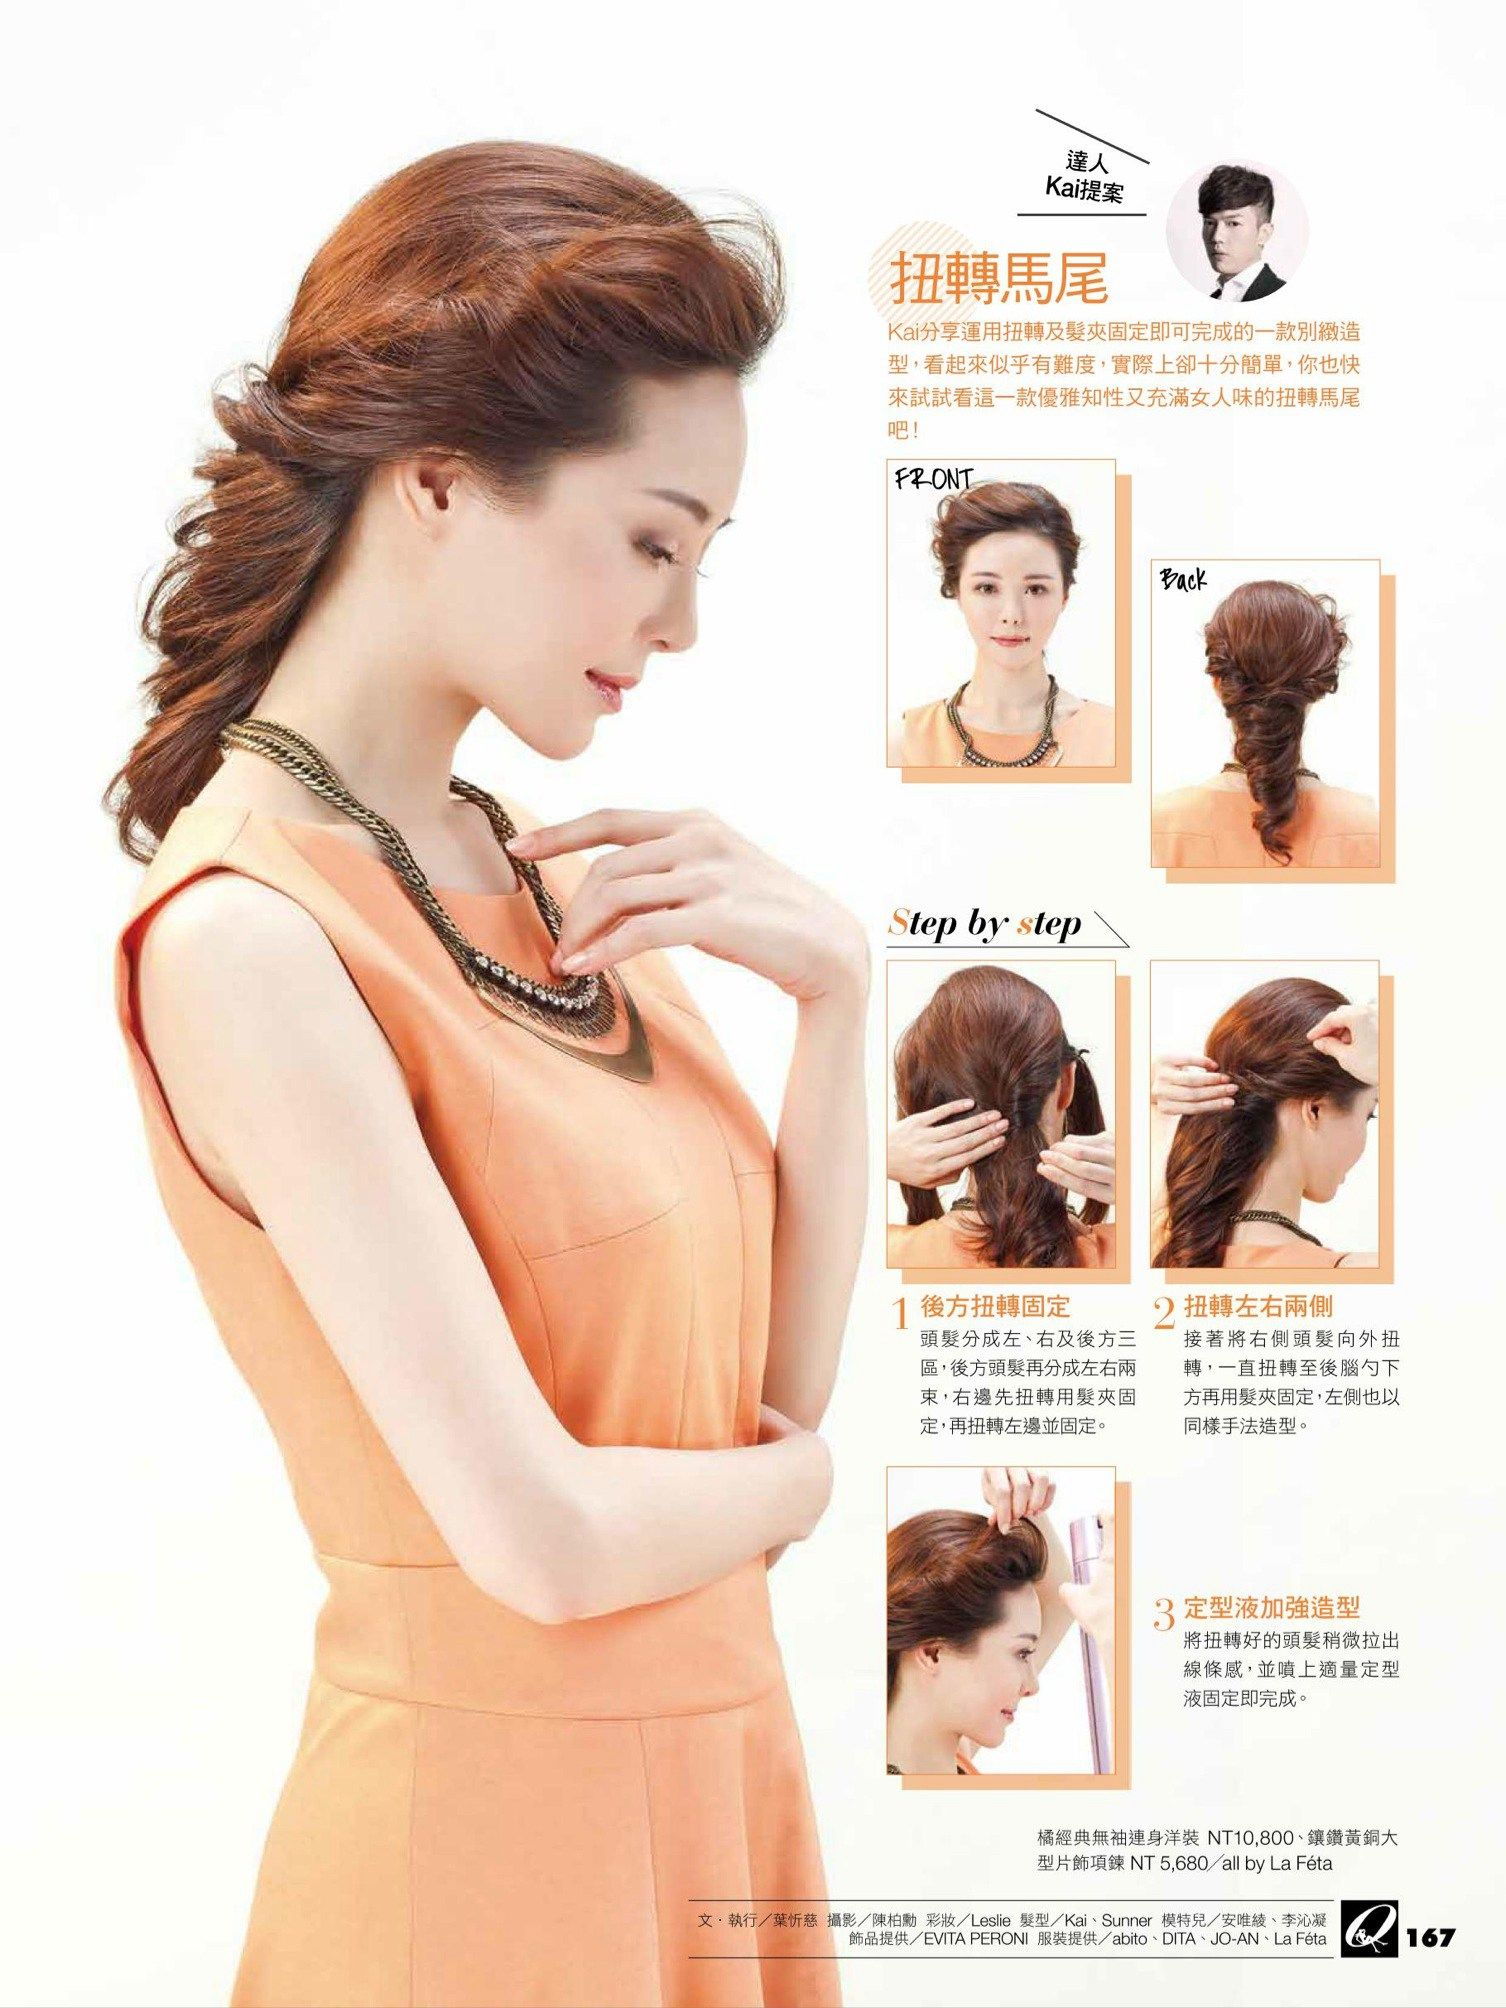 Quick Ponytail Hairstyles Quick Ponytail Hairstyle In 5 Minutes 6 H A I R S T Y L E S